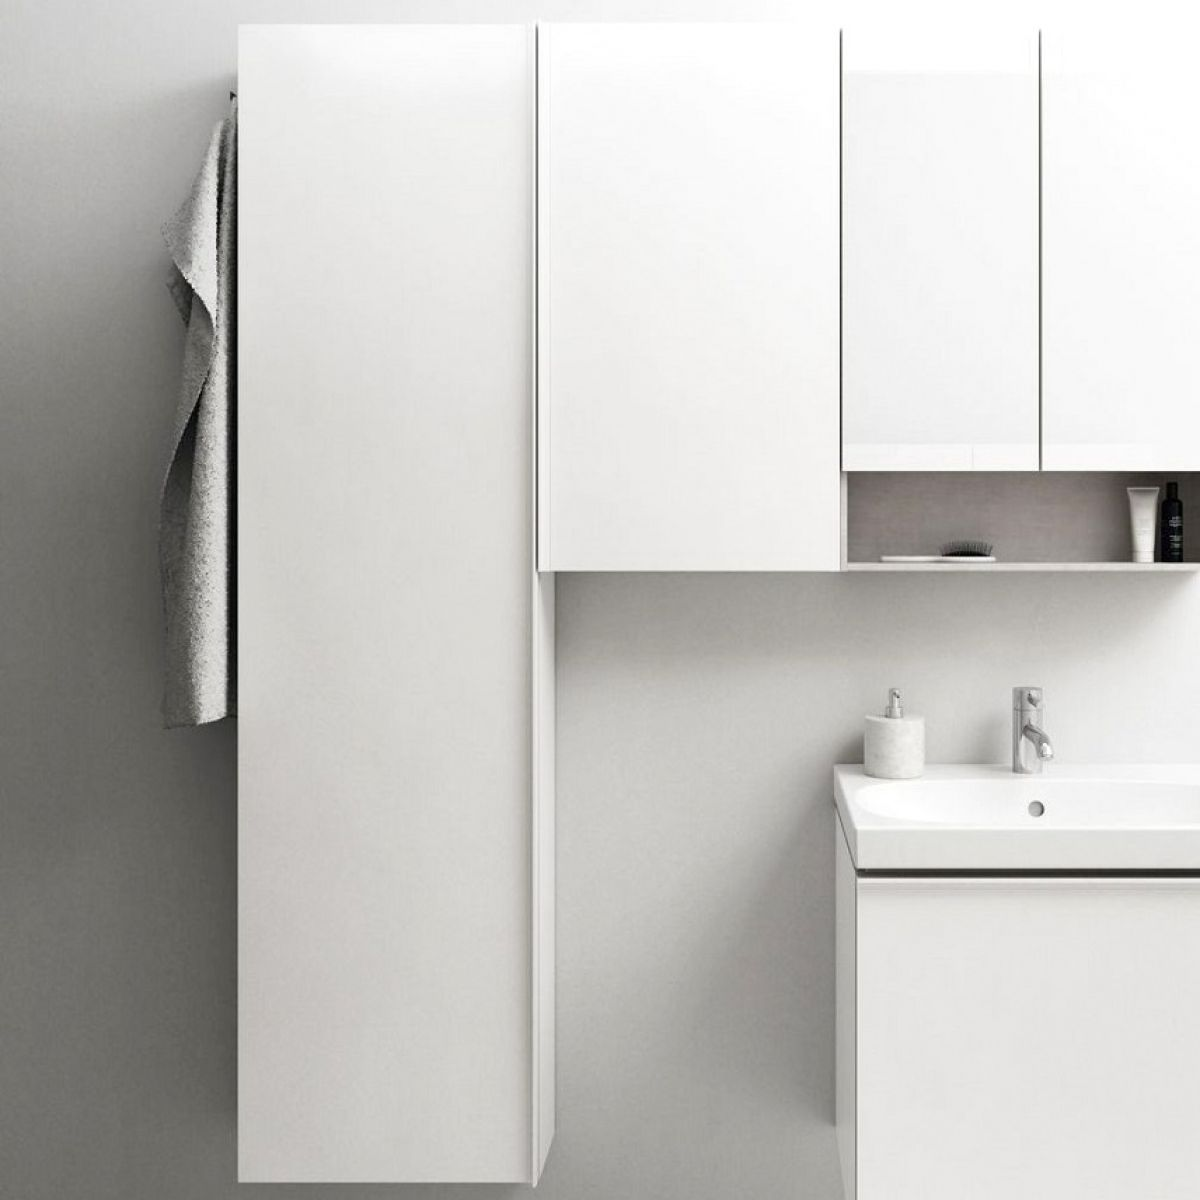 Geberit Acanto 173cm Tall Cabinet With One Door Uk Bathrooms